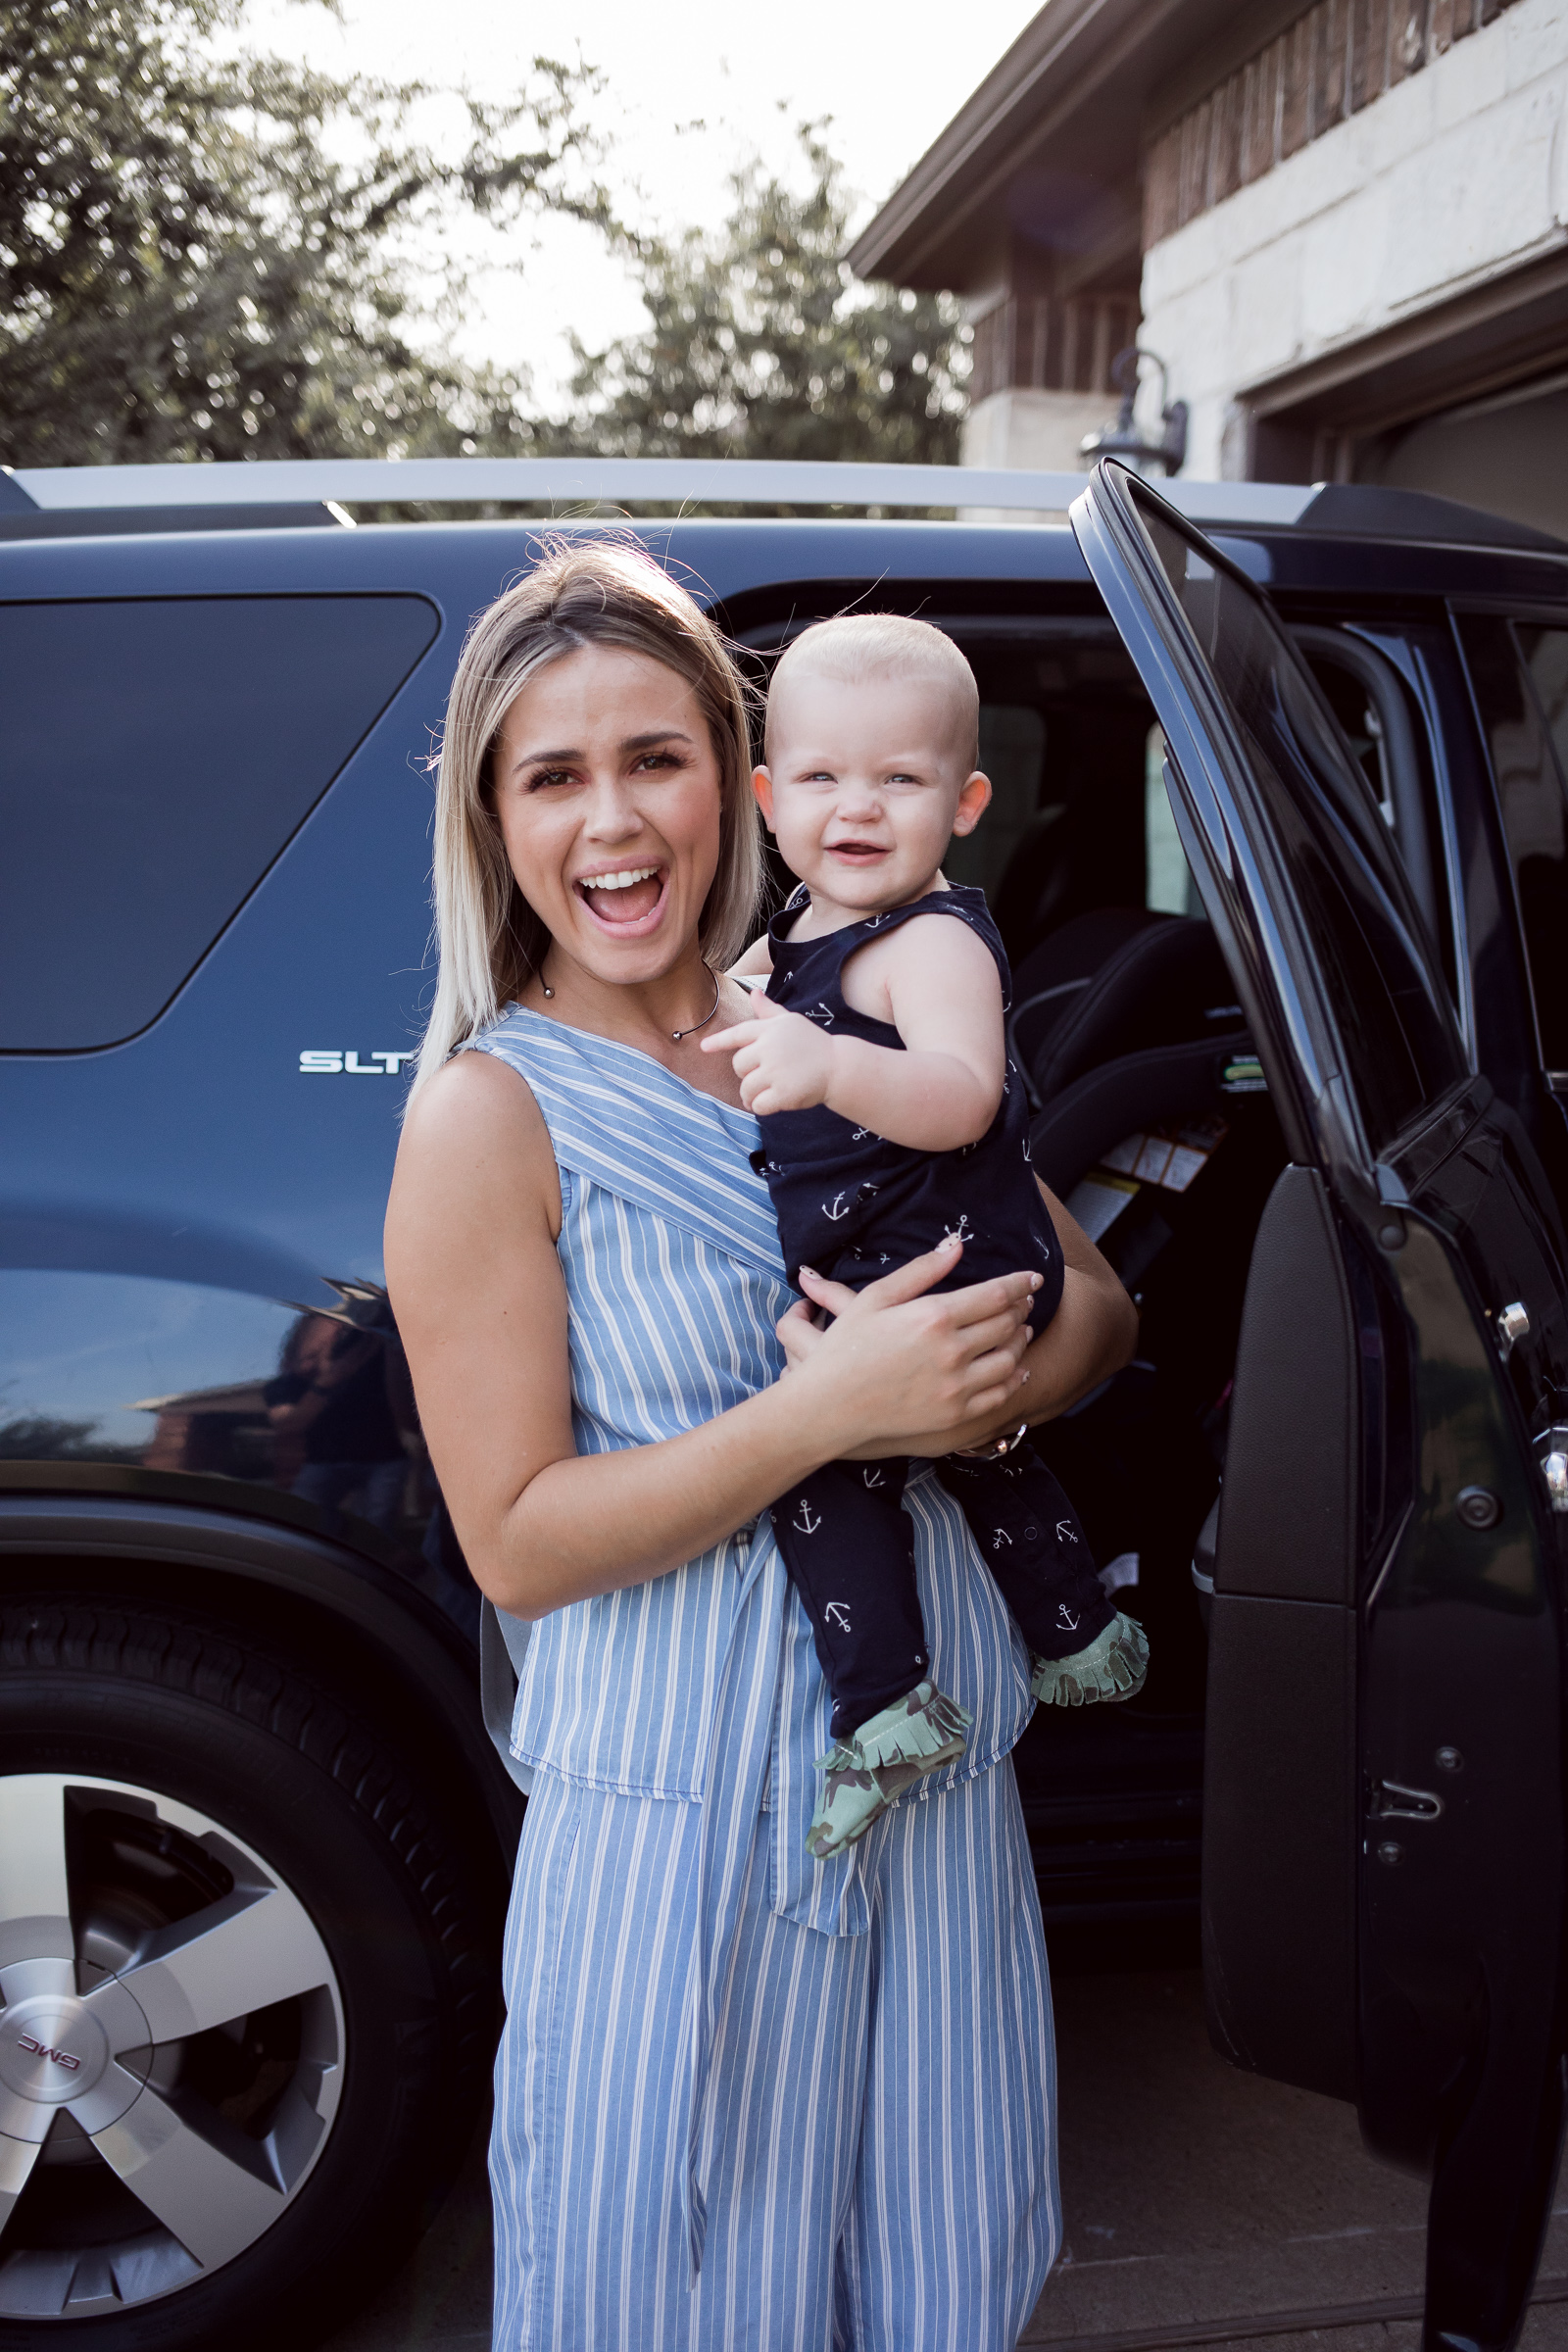 Houston Lifestyle blogger Uptown with Elly Brown shares her review on the Baby Jogger City View Car Seat and why she loves it.